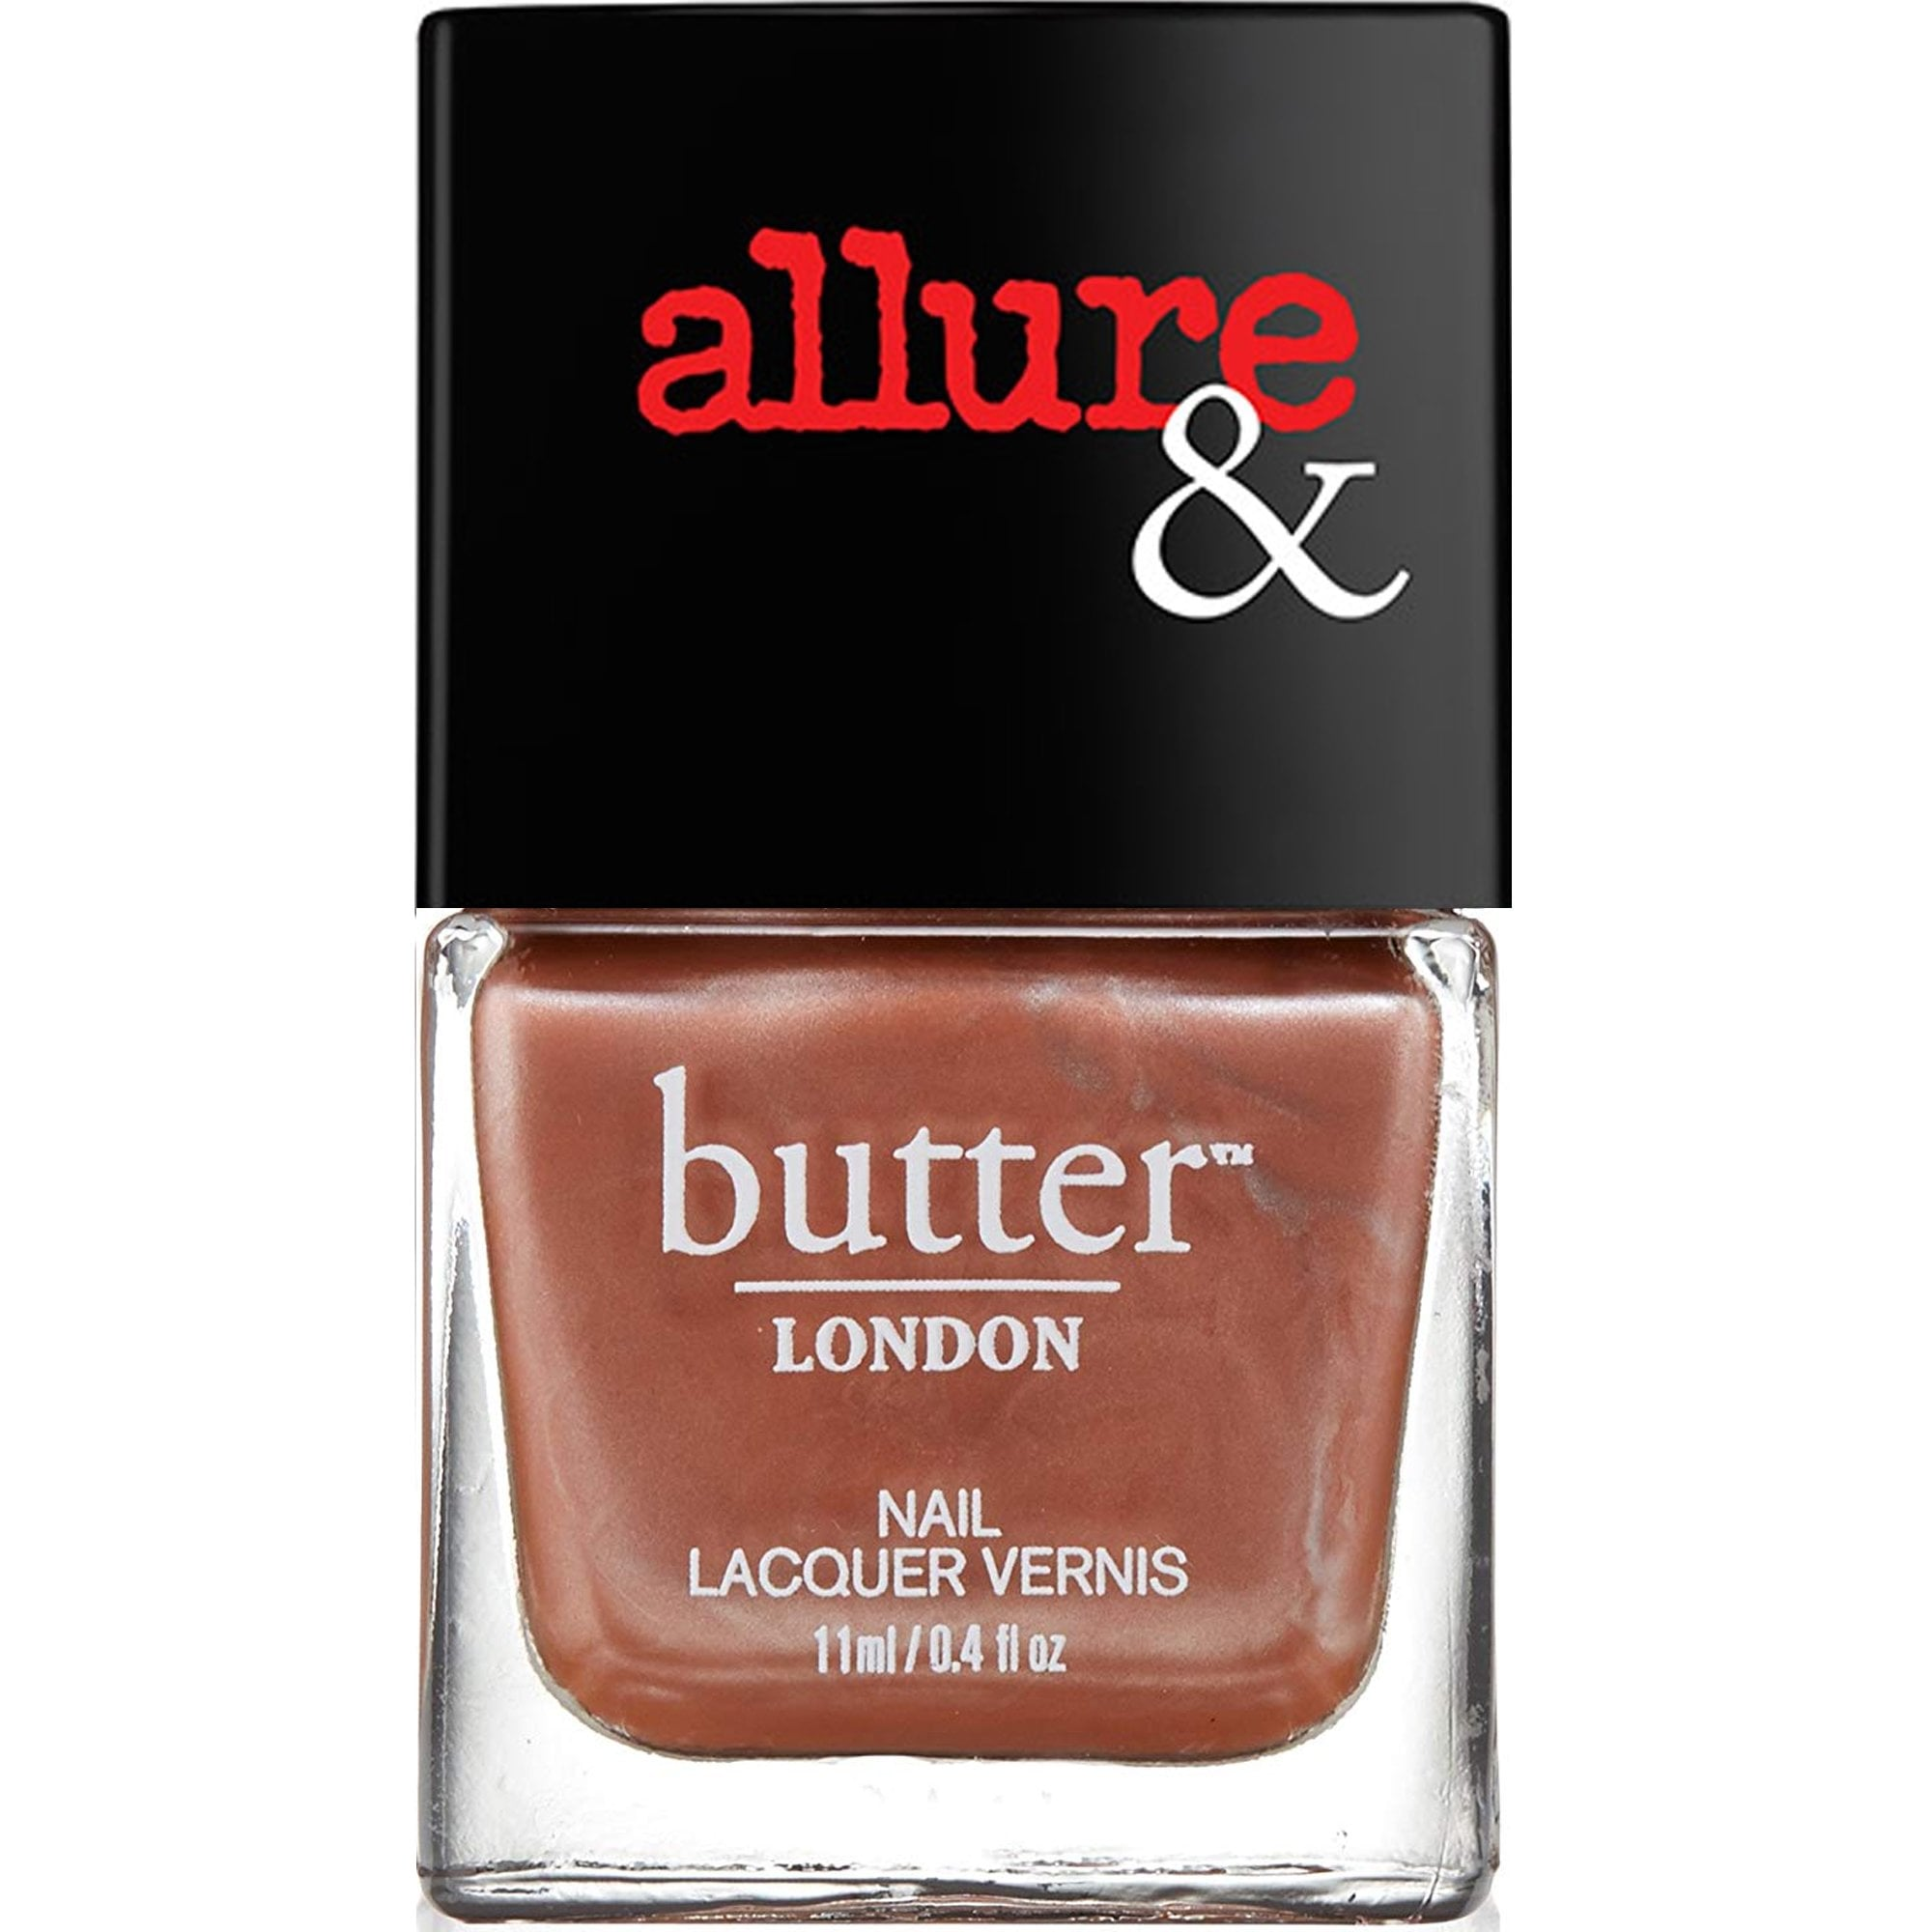 Butter London Allure Nail Polish Collection - Im On The List (11ml)